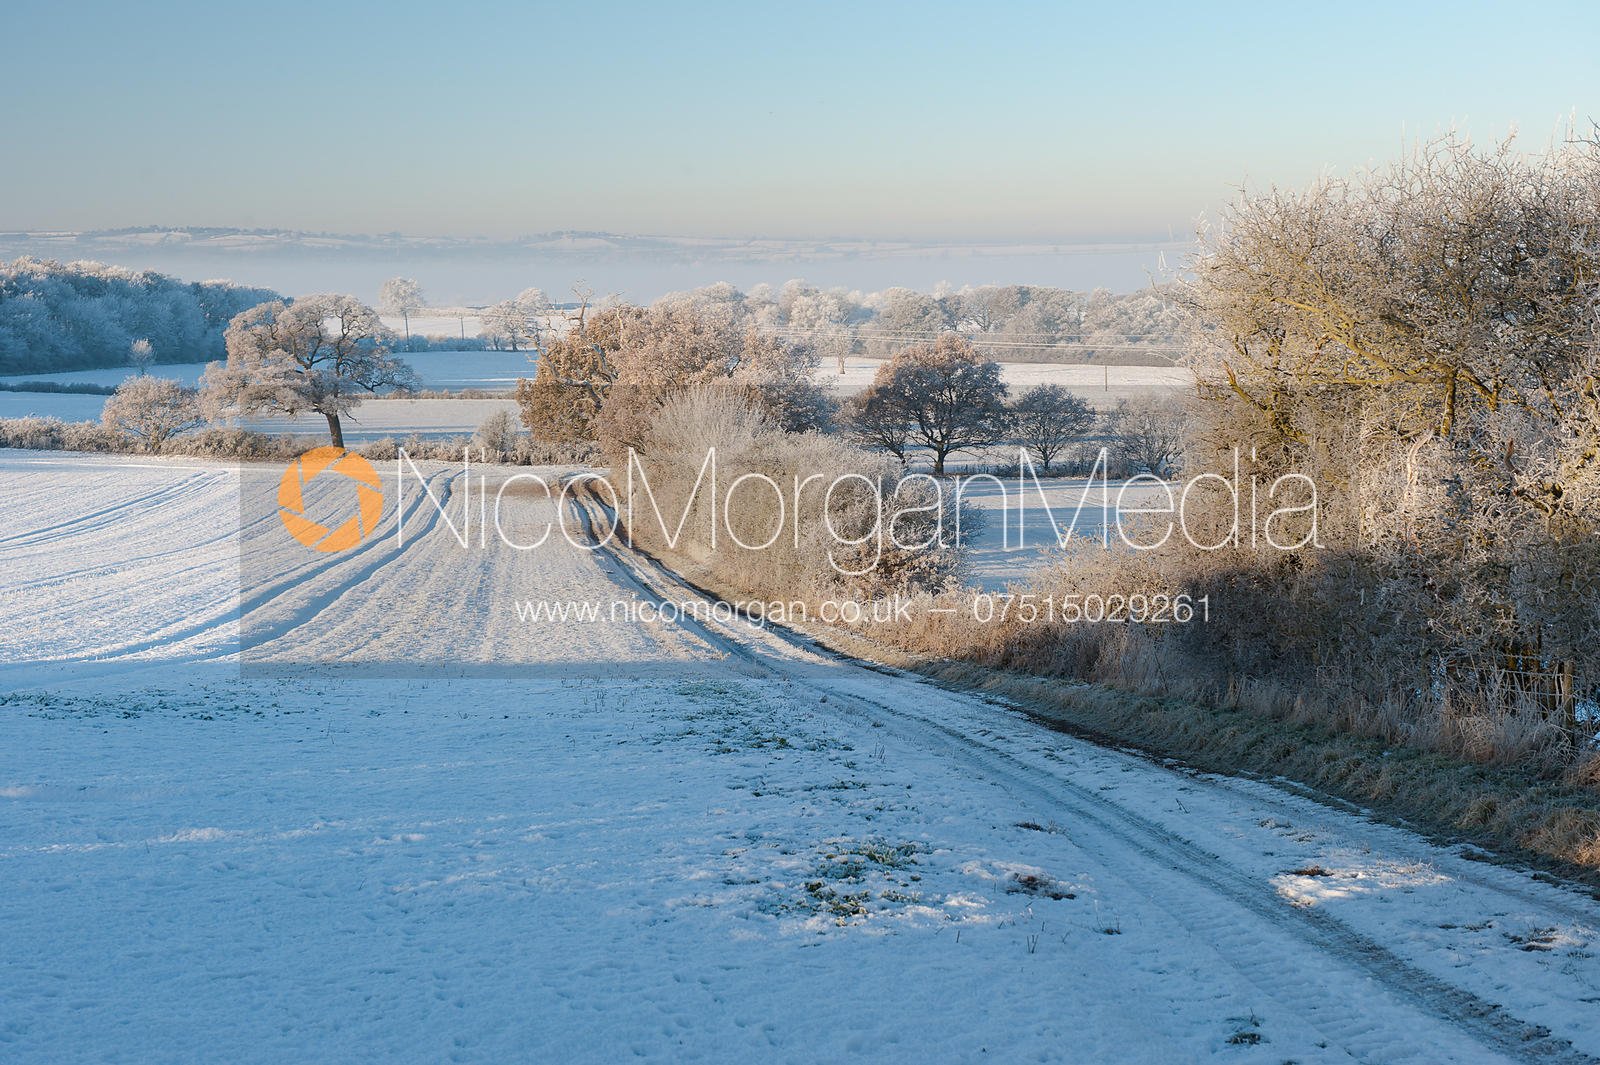 View of Rutland in the snow from Burley-on-the-Hill.